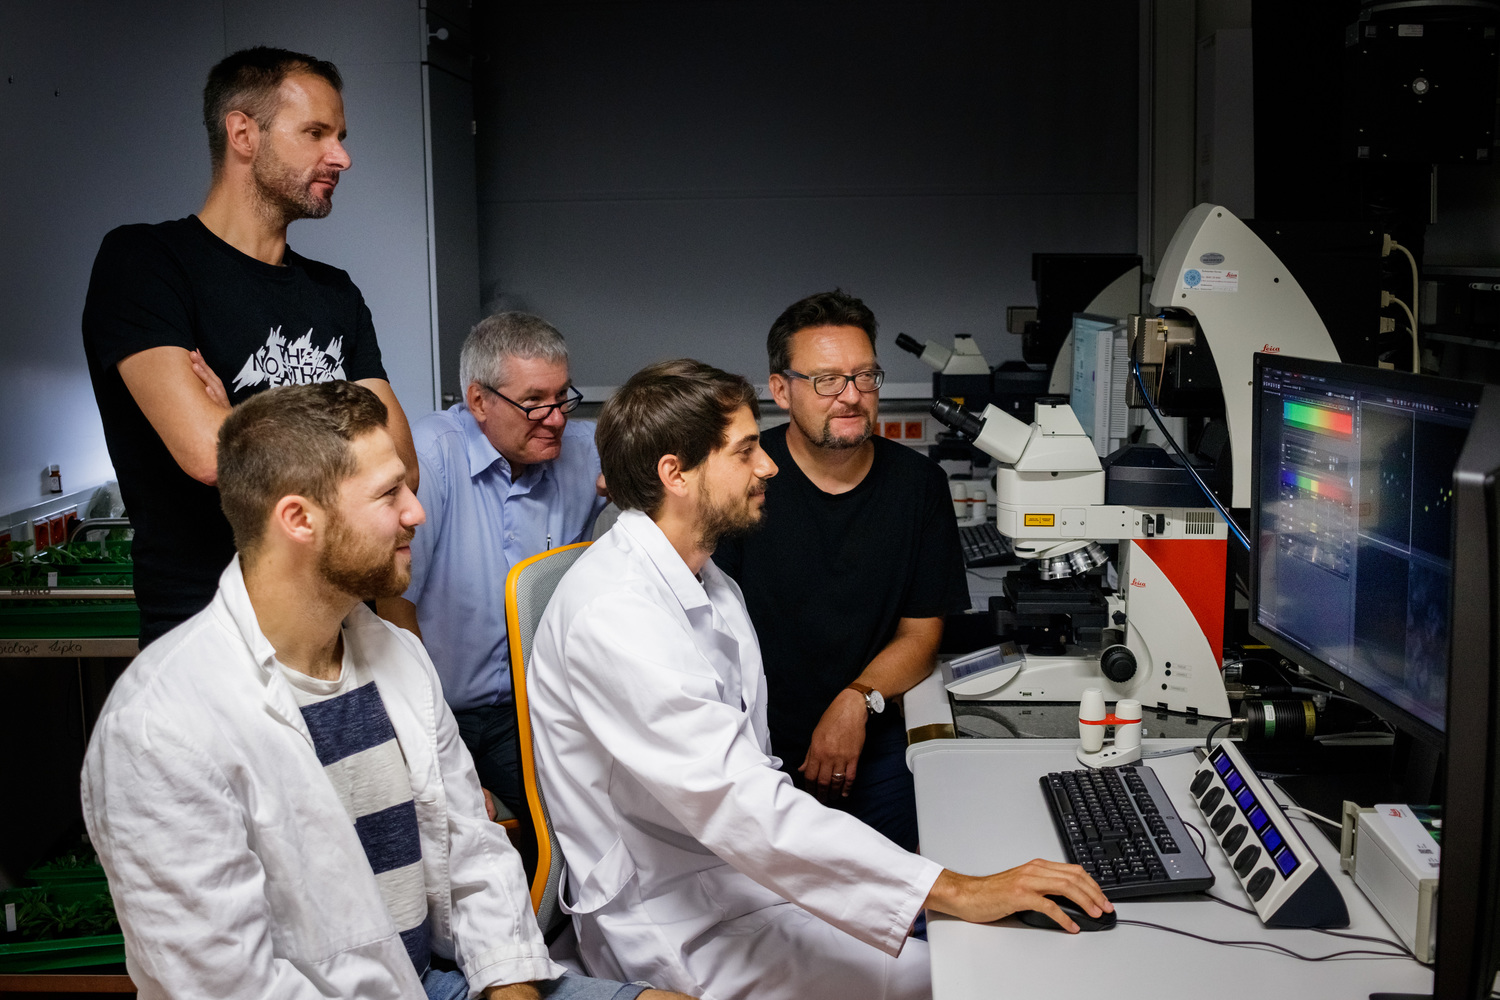 Daniel Lüdke shows his colleagues the results of the microscopic examination.